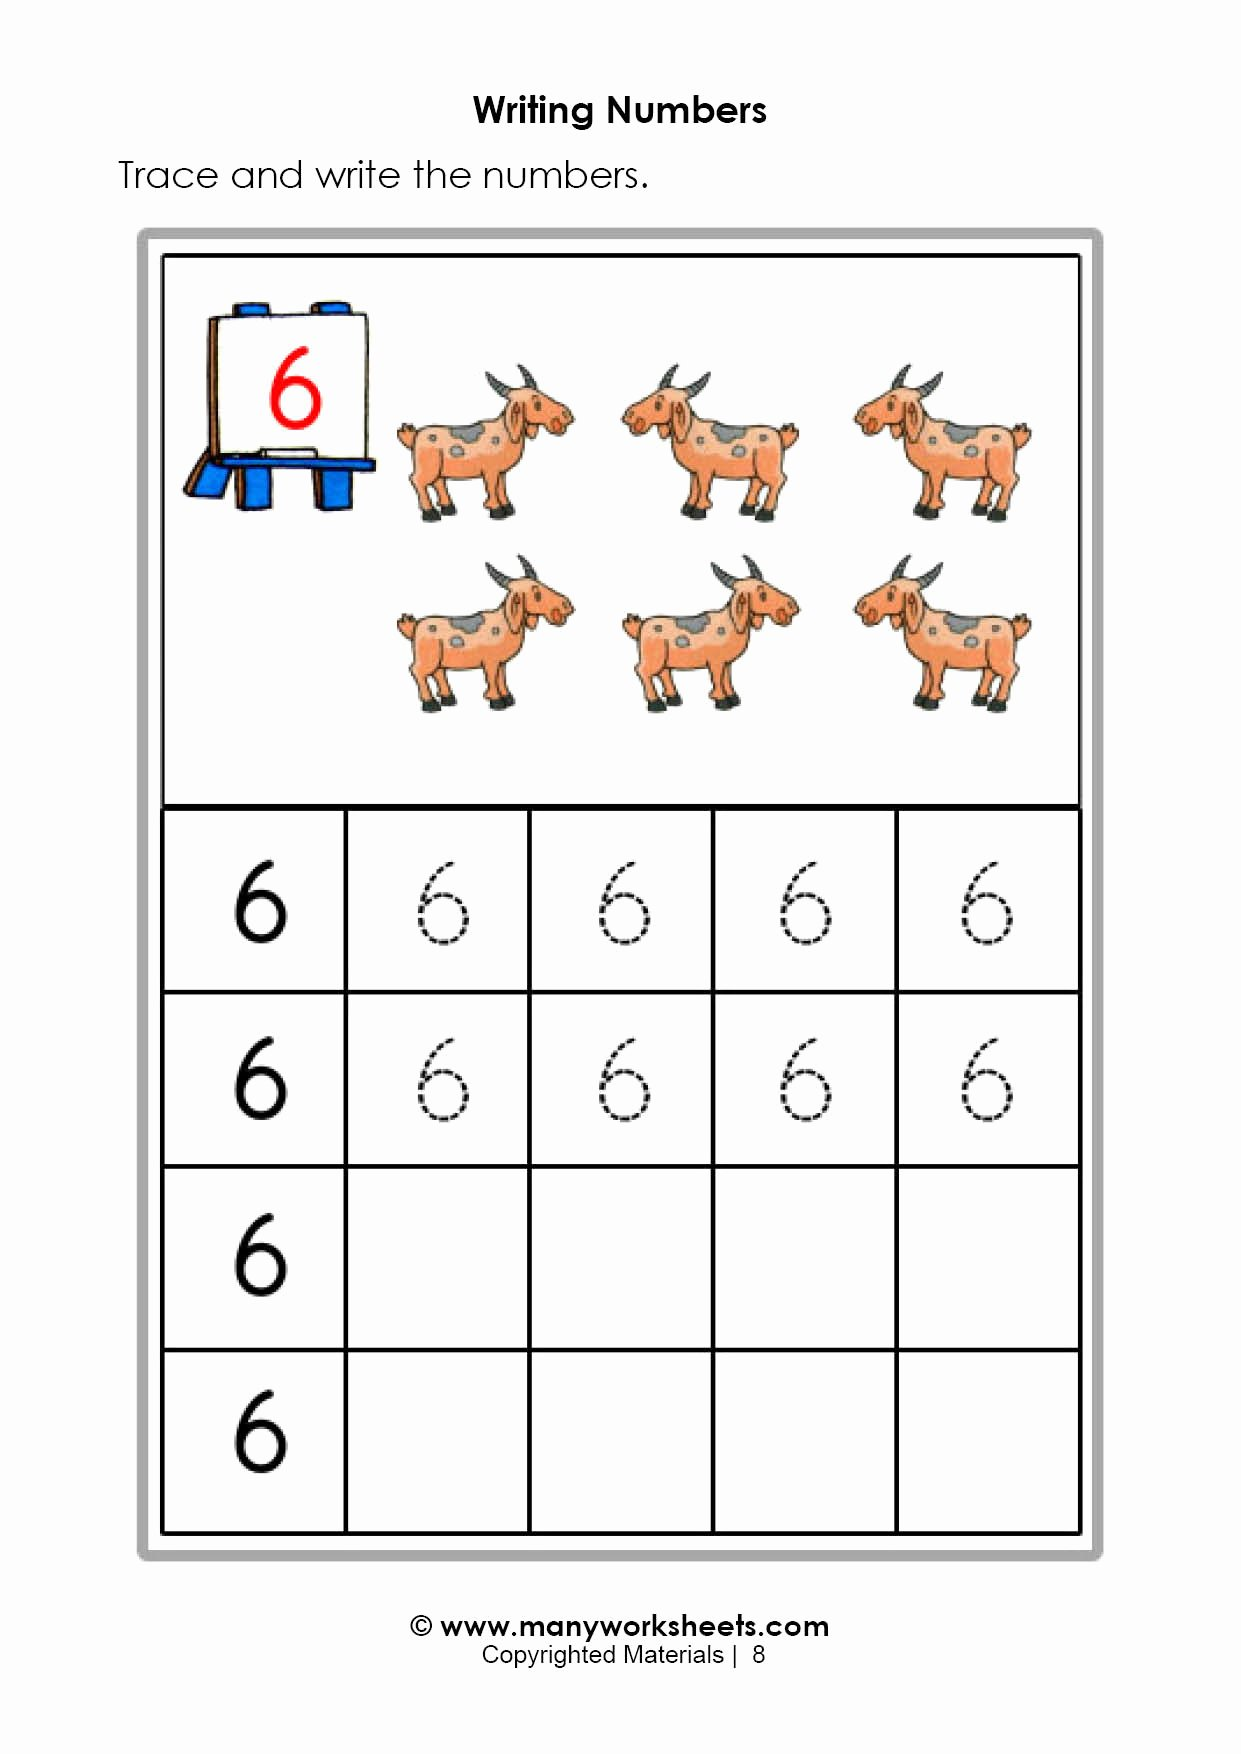 Number 6 Worksheets for Preschoolers Inspirational Tracing and Writing Number 6